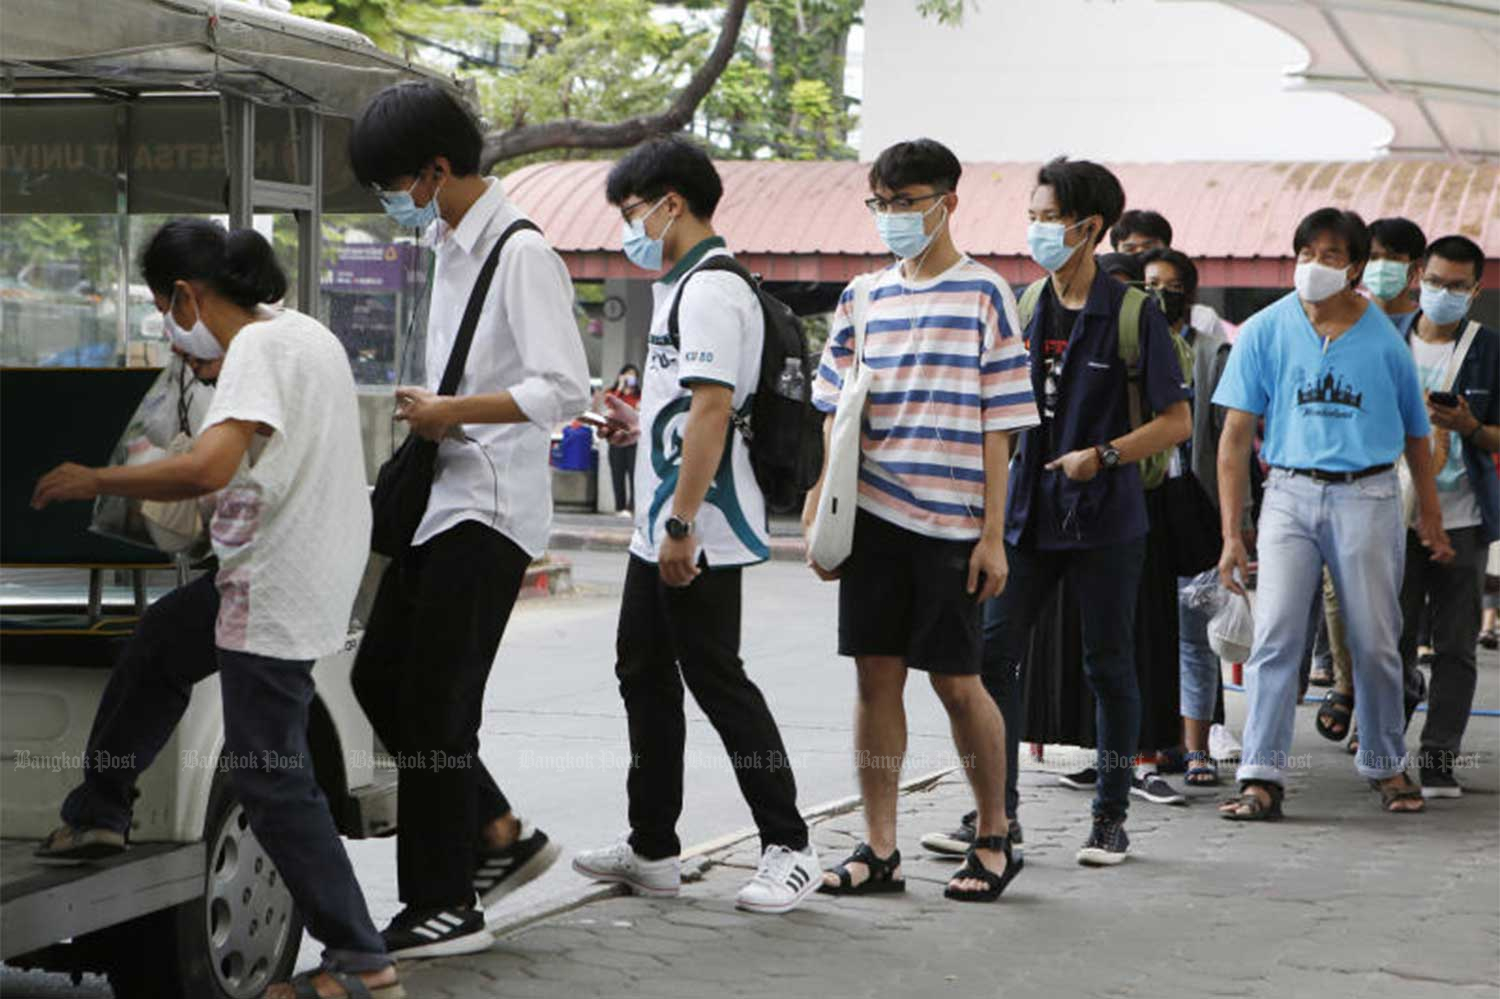 People wear face masks as they are about to board a vehicle at Kasetsart University in Bangkok on Friday. (Photo by Apichit Jinakul)